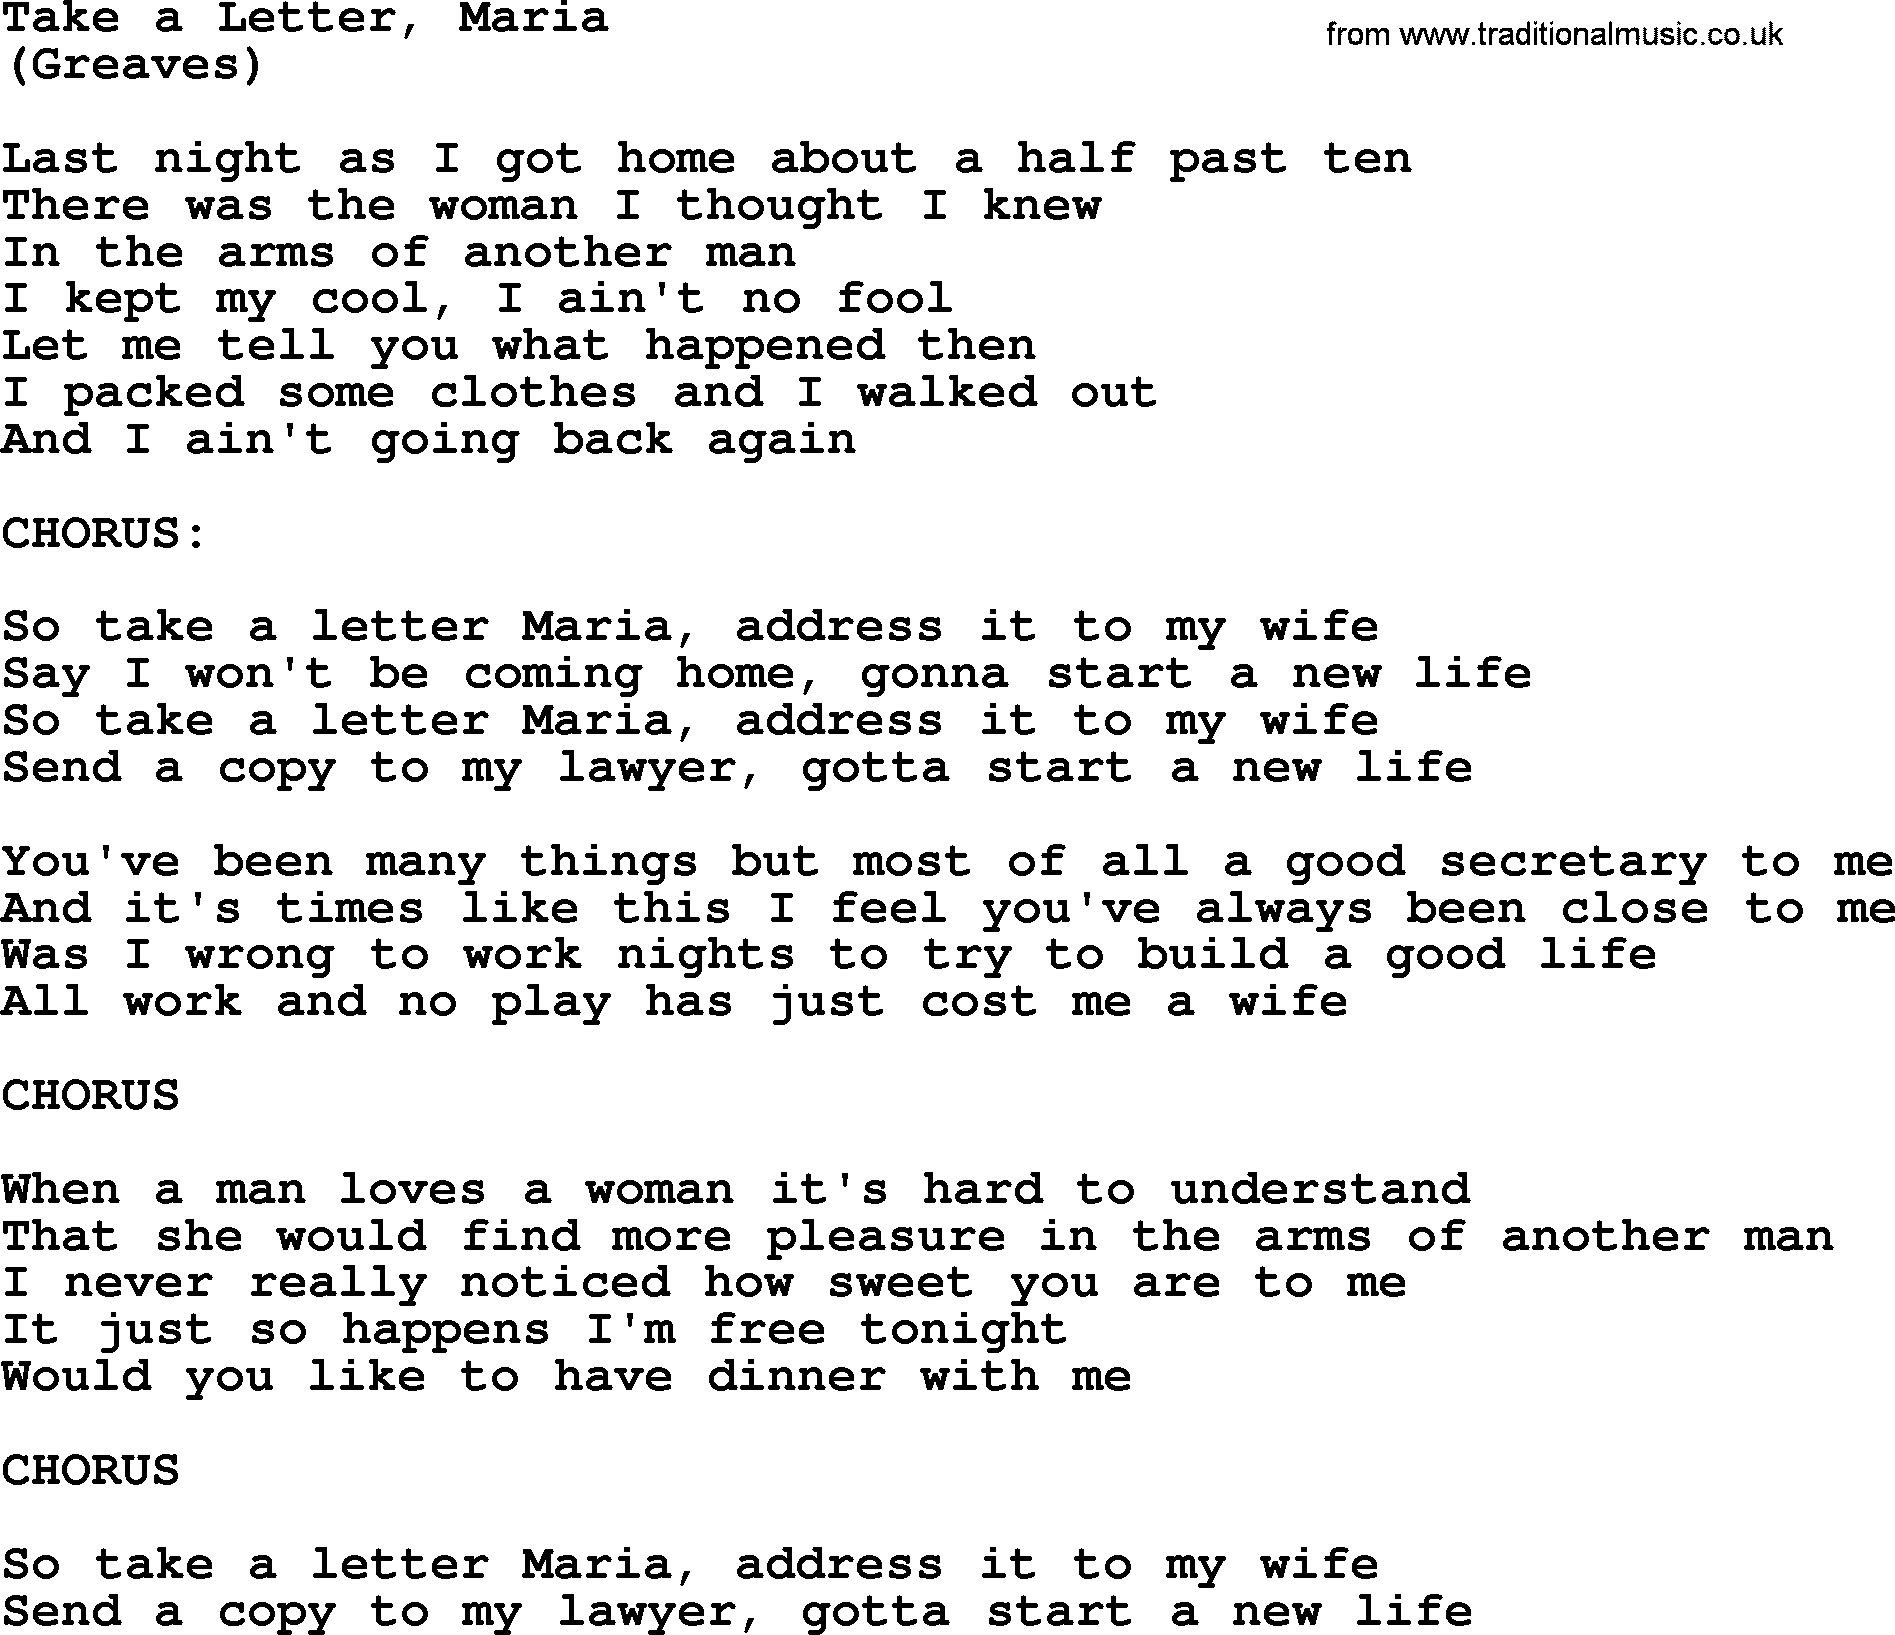 Take A Letter, Maria, by The Byrds - lyrics with pdf